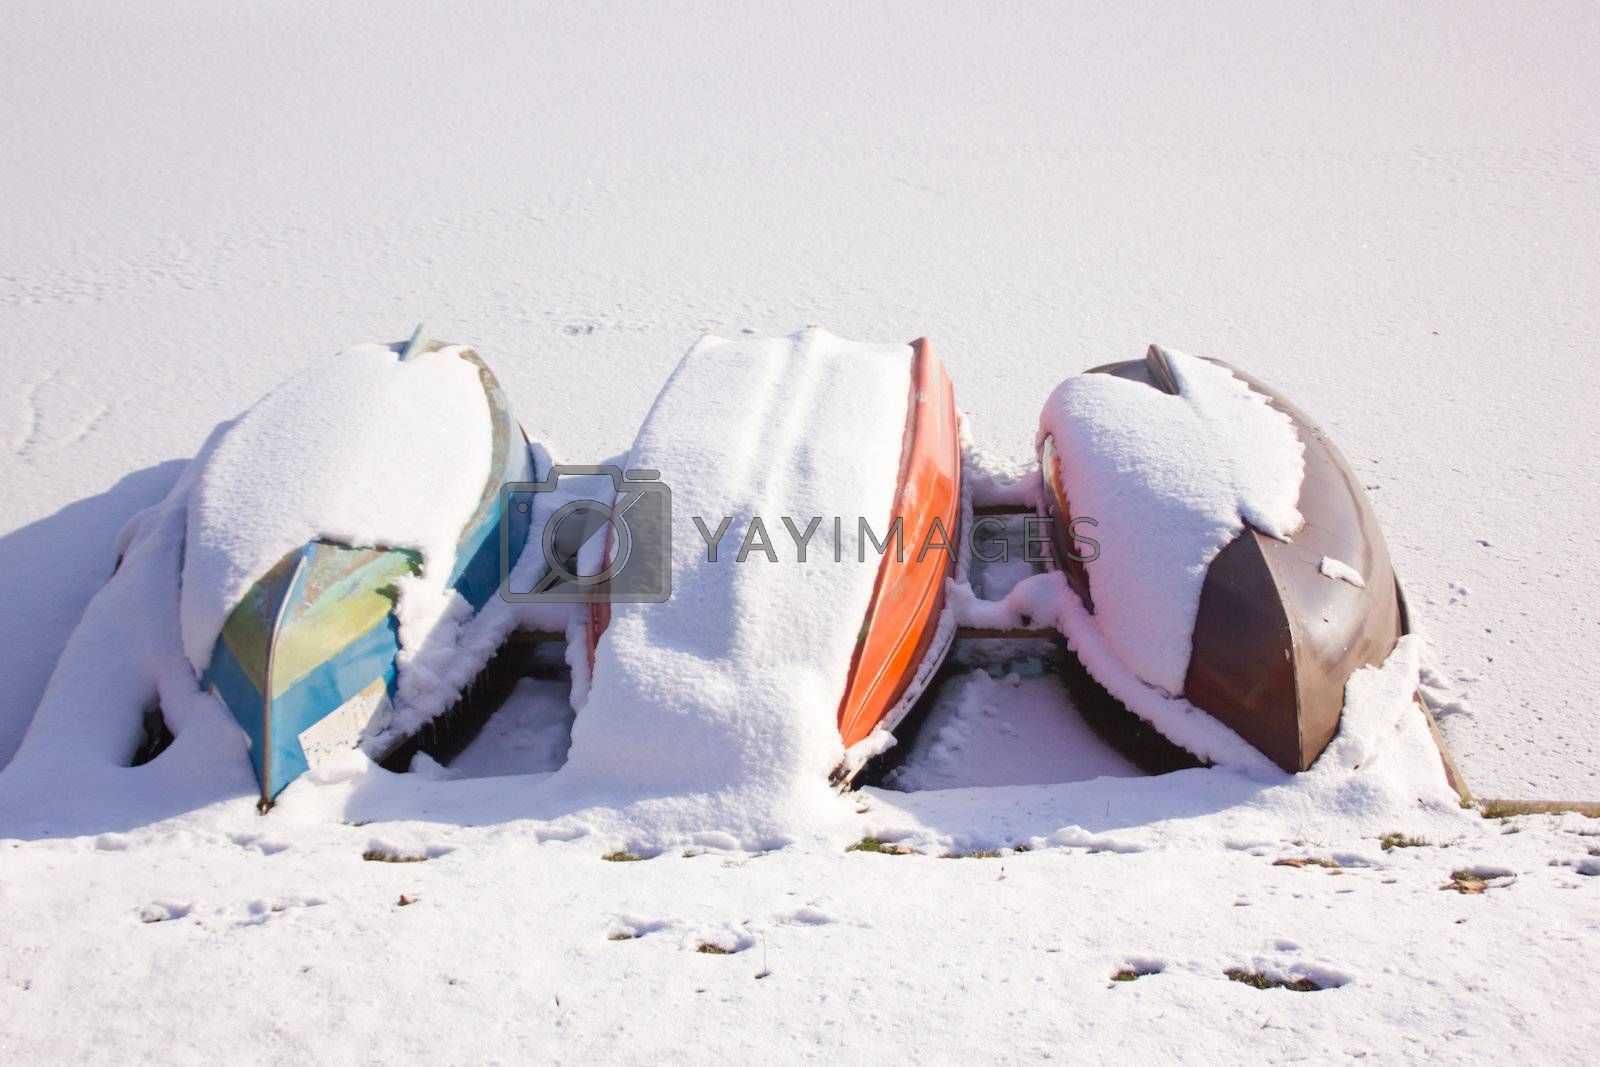 Boats on frozen lake covered with snow